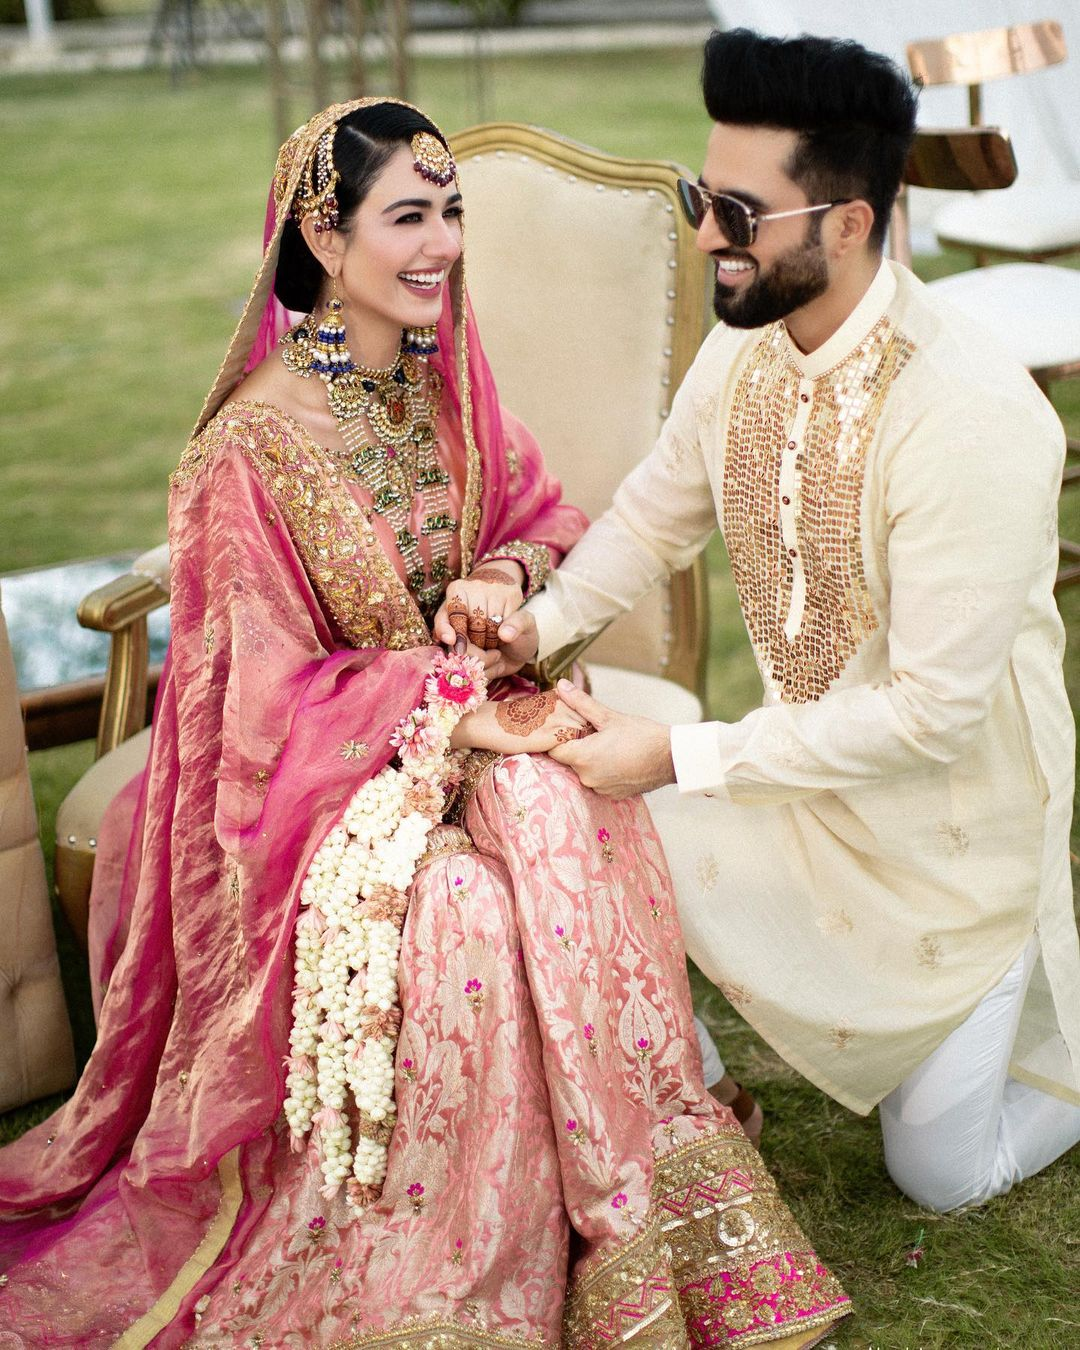 Pakistani Singer Falak Shabir and Actress Sara Khan's Royal Muslim Wedding